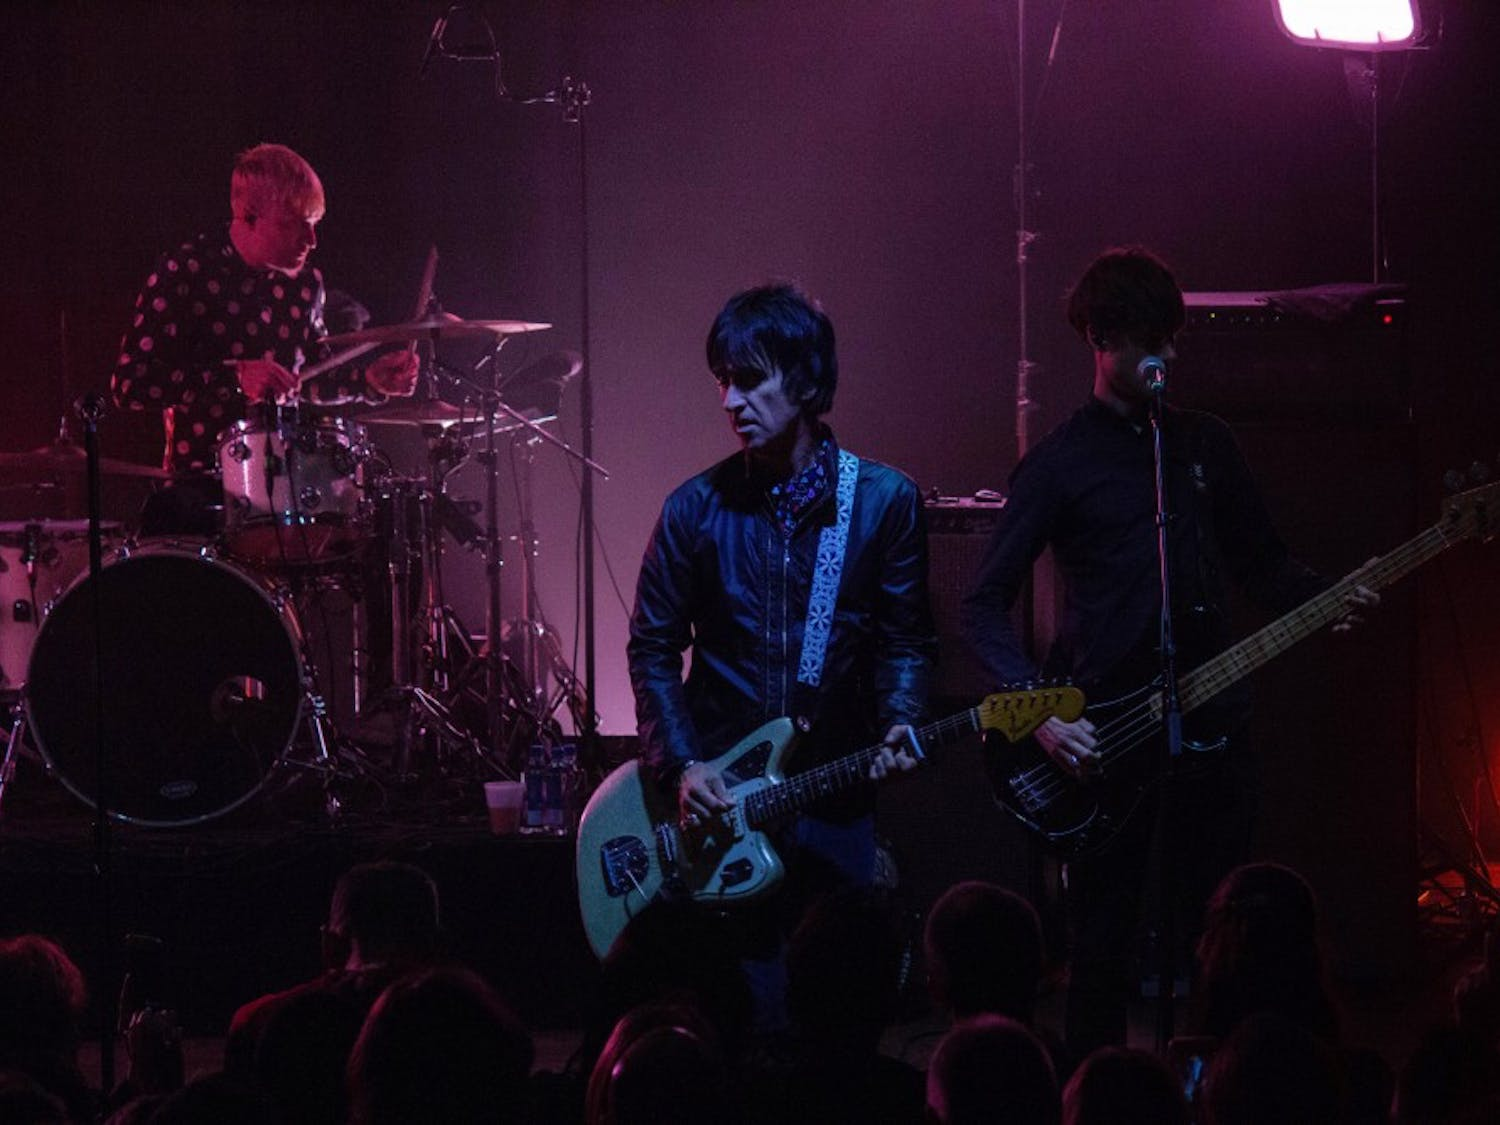 """Johnny Marr held nothing back at the Town Ballroom on Saturday night. The legendary guitarist and Smiths founding member played both classic tracks like """"The Headmaster's Ritual"""" as well as newer cuts from """"Call the Comet."""""""